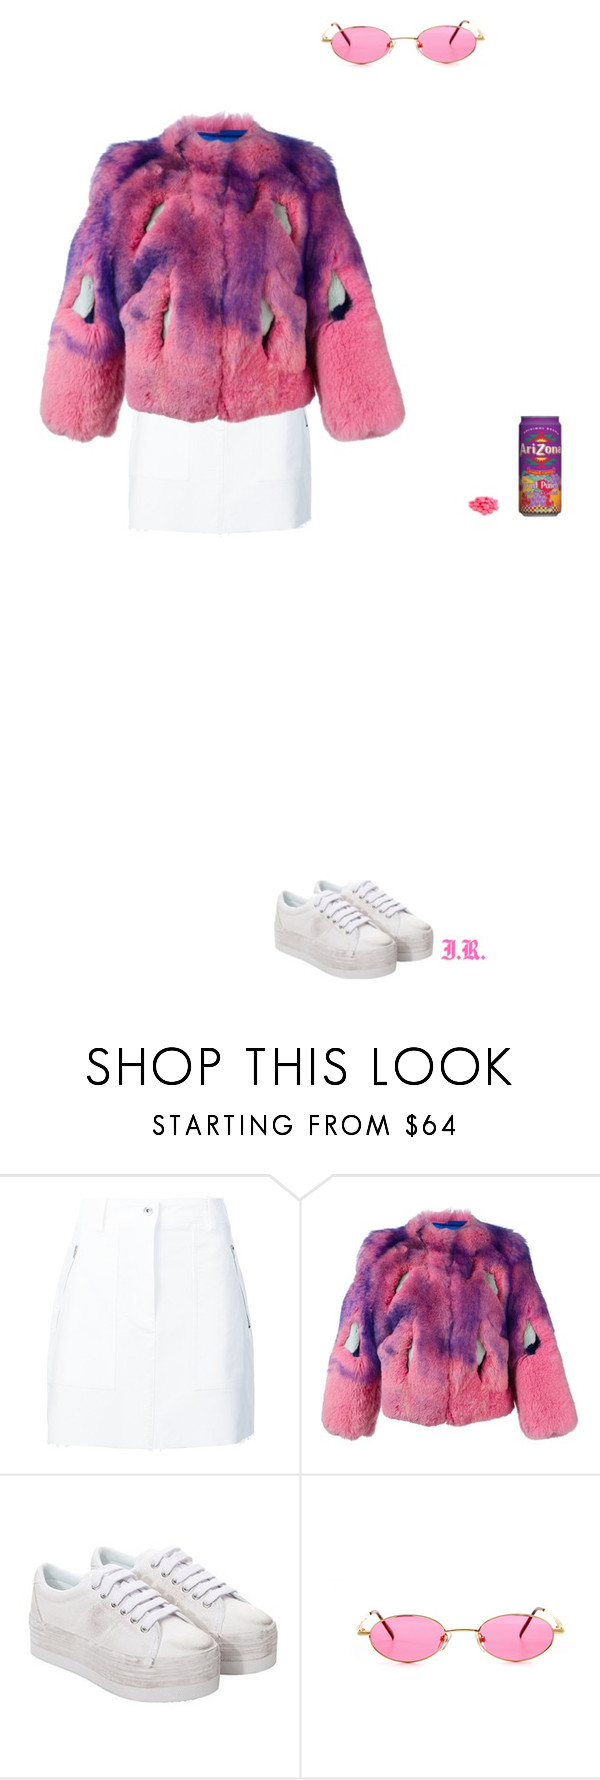 """""""Untitled #413"""" by iris-roijen ❤ liked on Polyvore featuring rag & bone, Liska, Jeffrey Campbell and Gucci"""